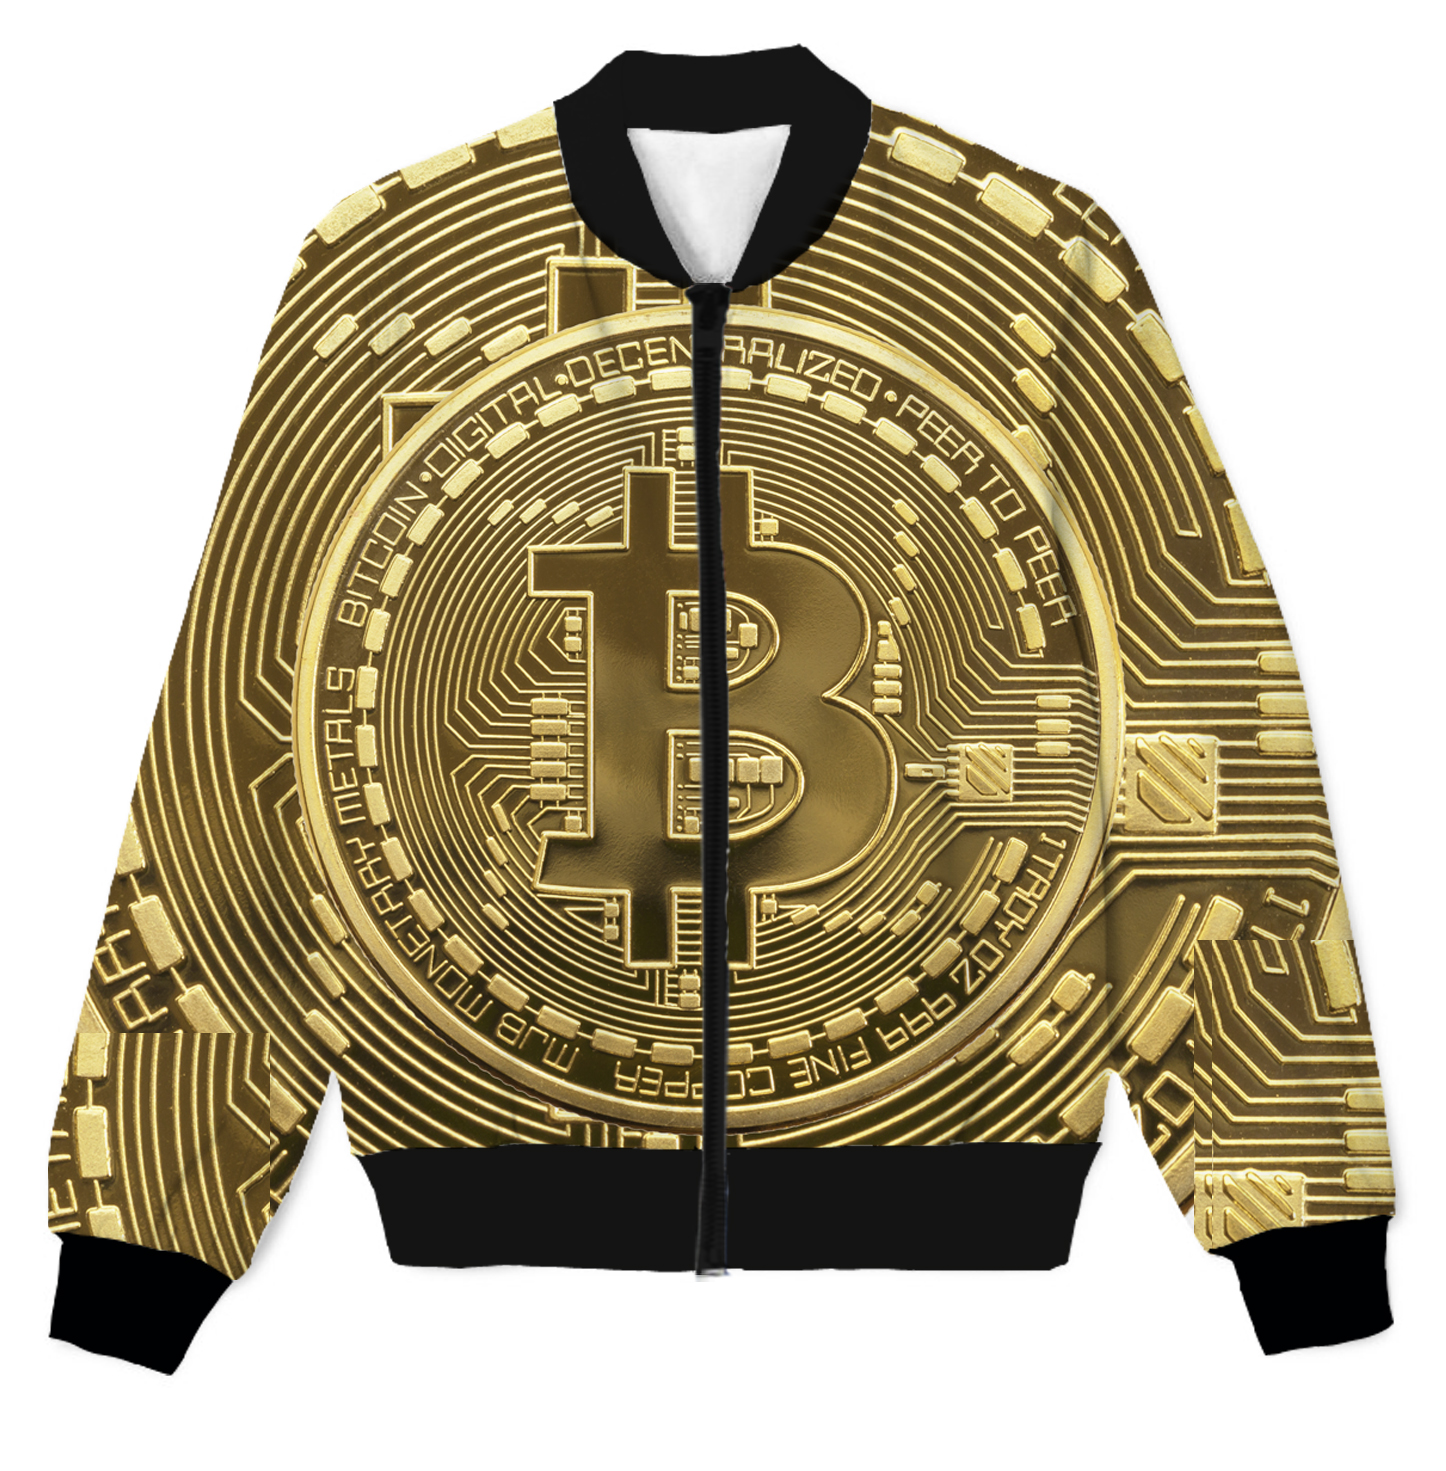 BITCOIN MENS CREW NECK SWEATSHIRT JUMPER GOLD PRINTED BLACK//GOLD